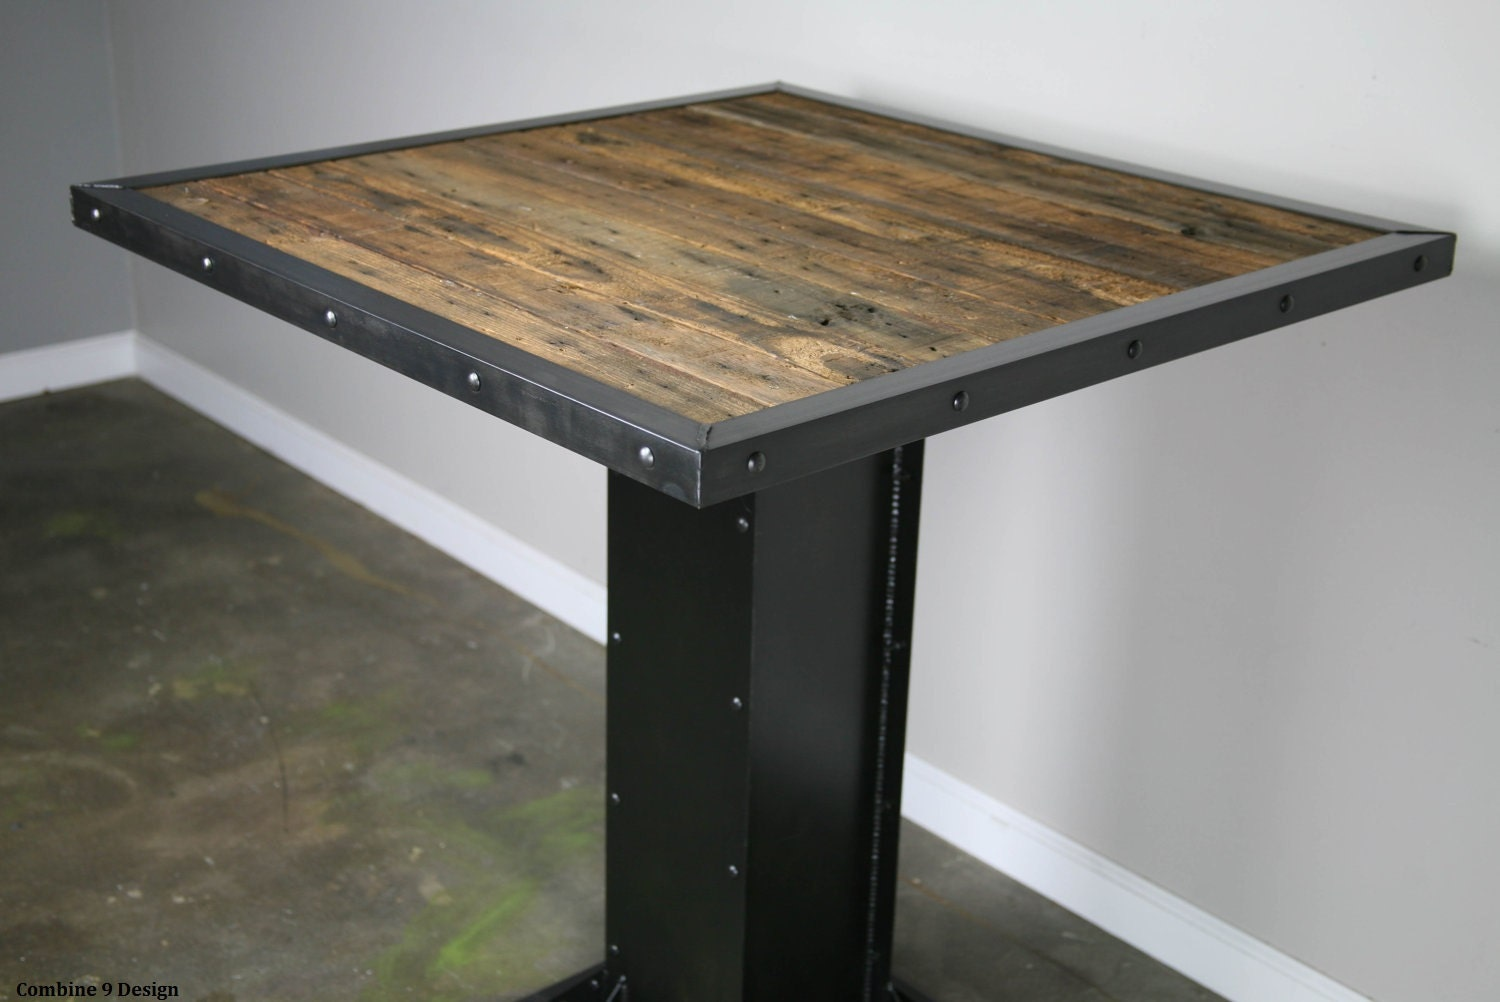 Bistro dining table modern industrial design by leecowen on etsy - Industrial kitchen tables ...